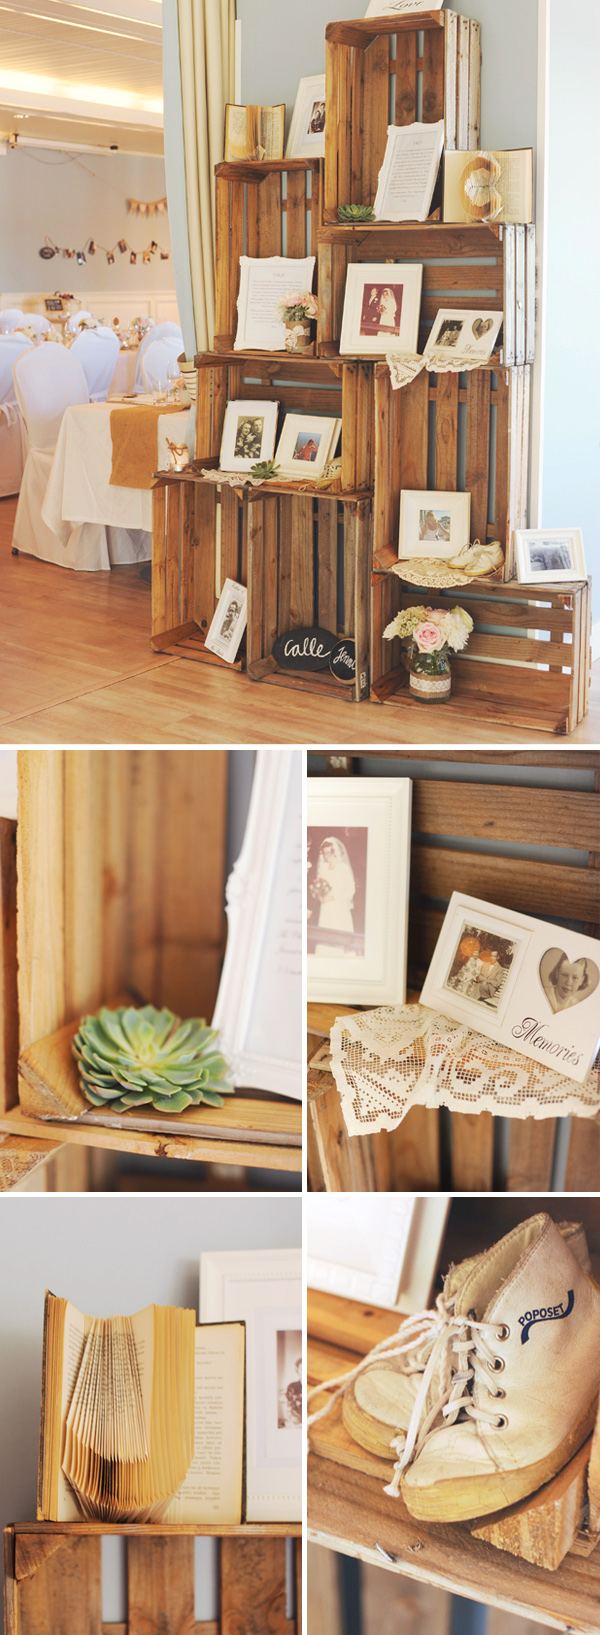 Unique uses for vintage crates at weddings